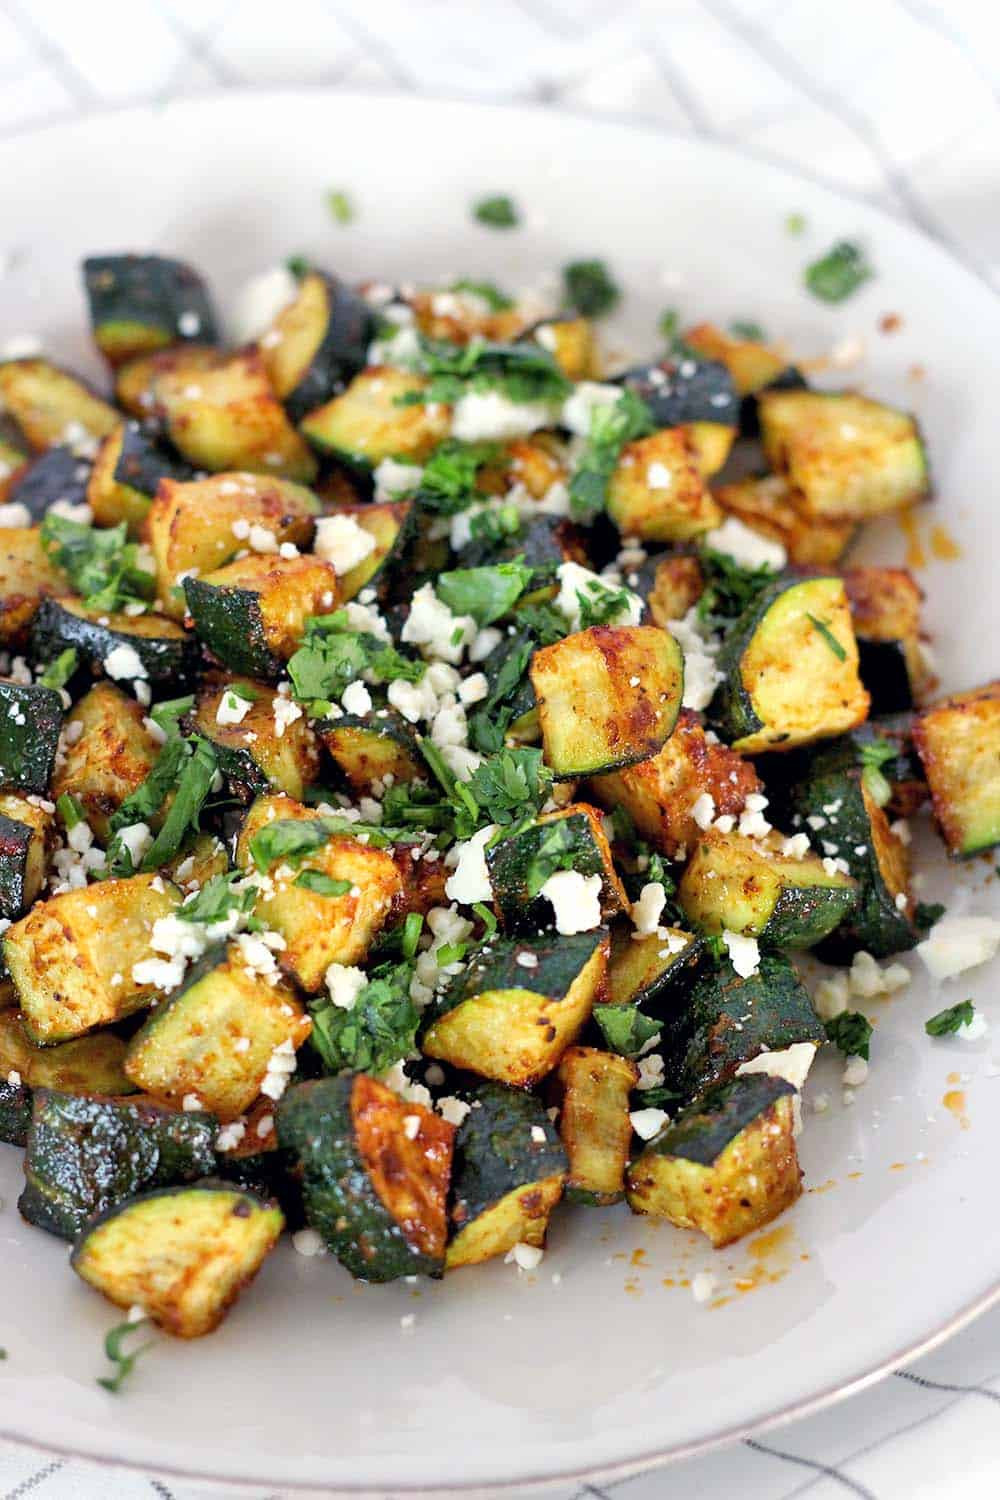 Vegetable Side Dishes Healthy  15 Easy Low Carb Ve able Recipes Primal Edge Health